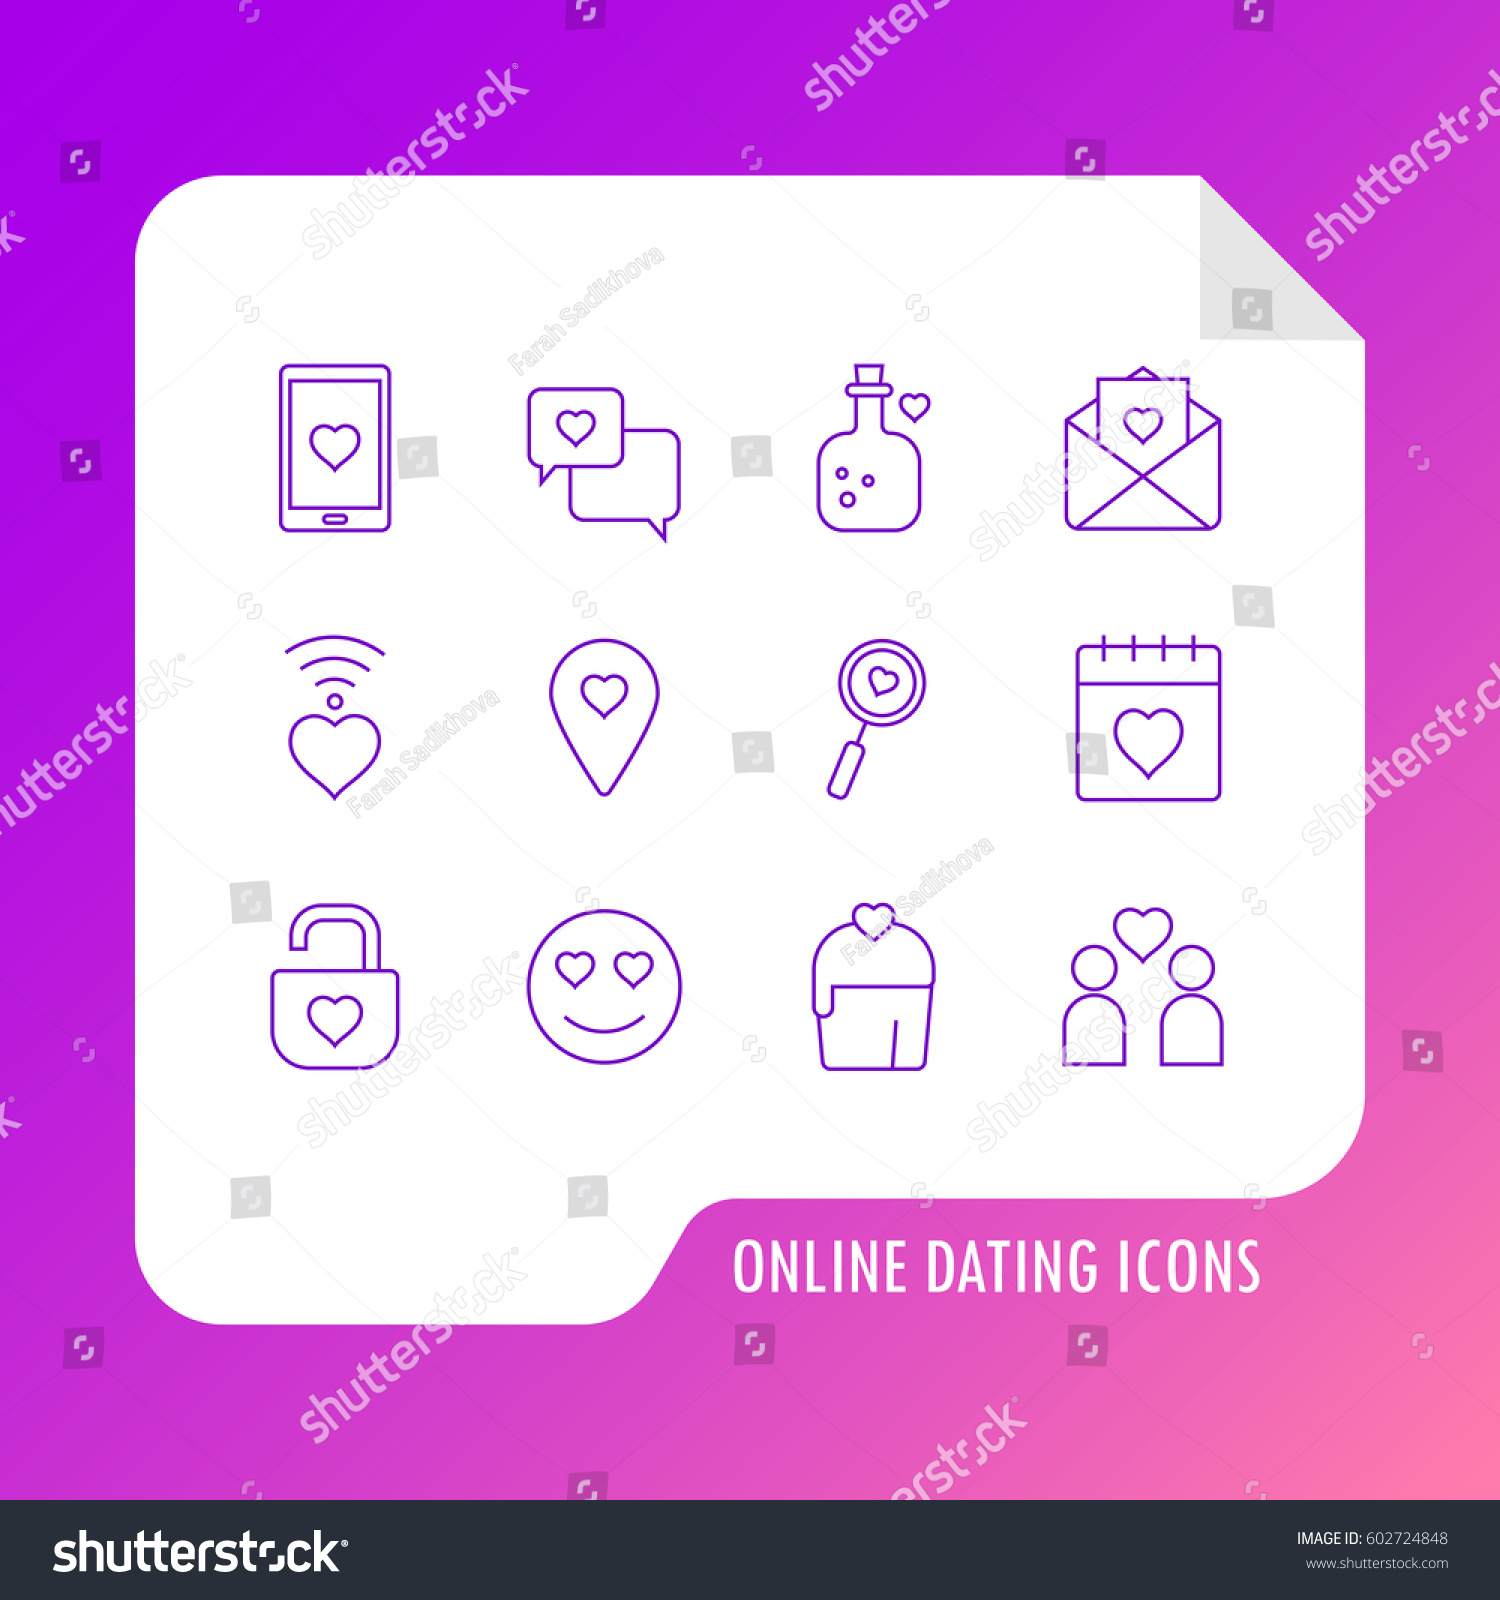 The square online dating